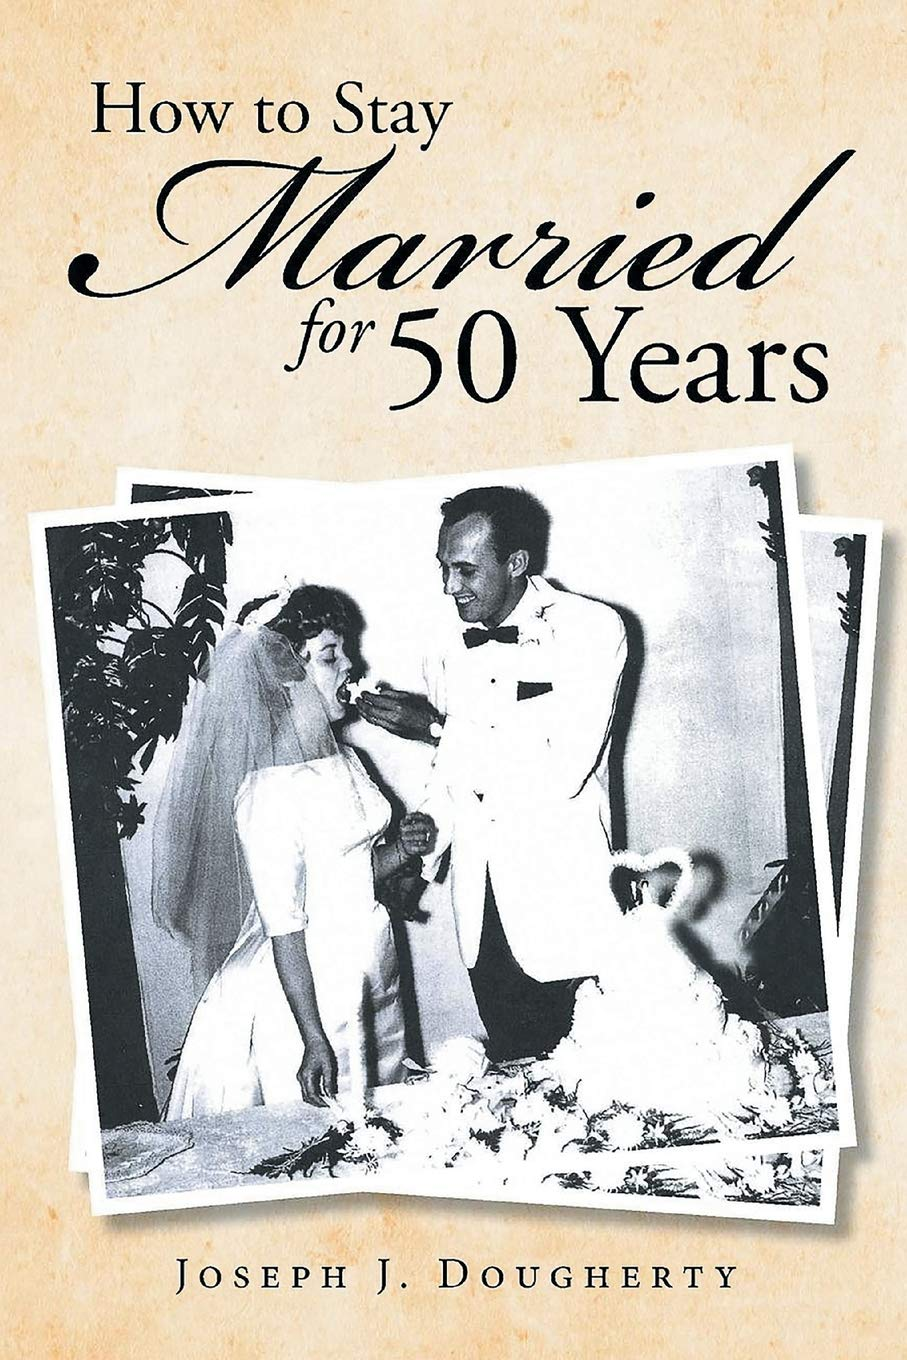 A Book About Staying Married for Years Now on Amazon